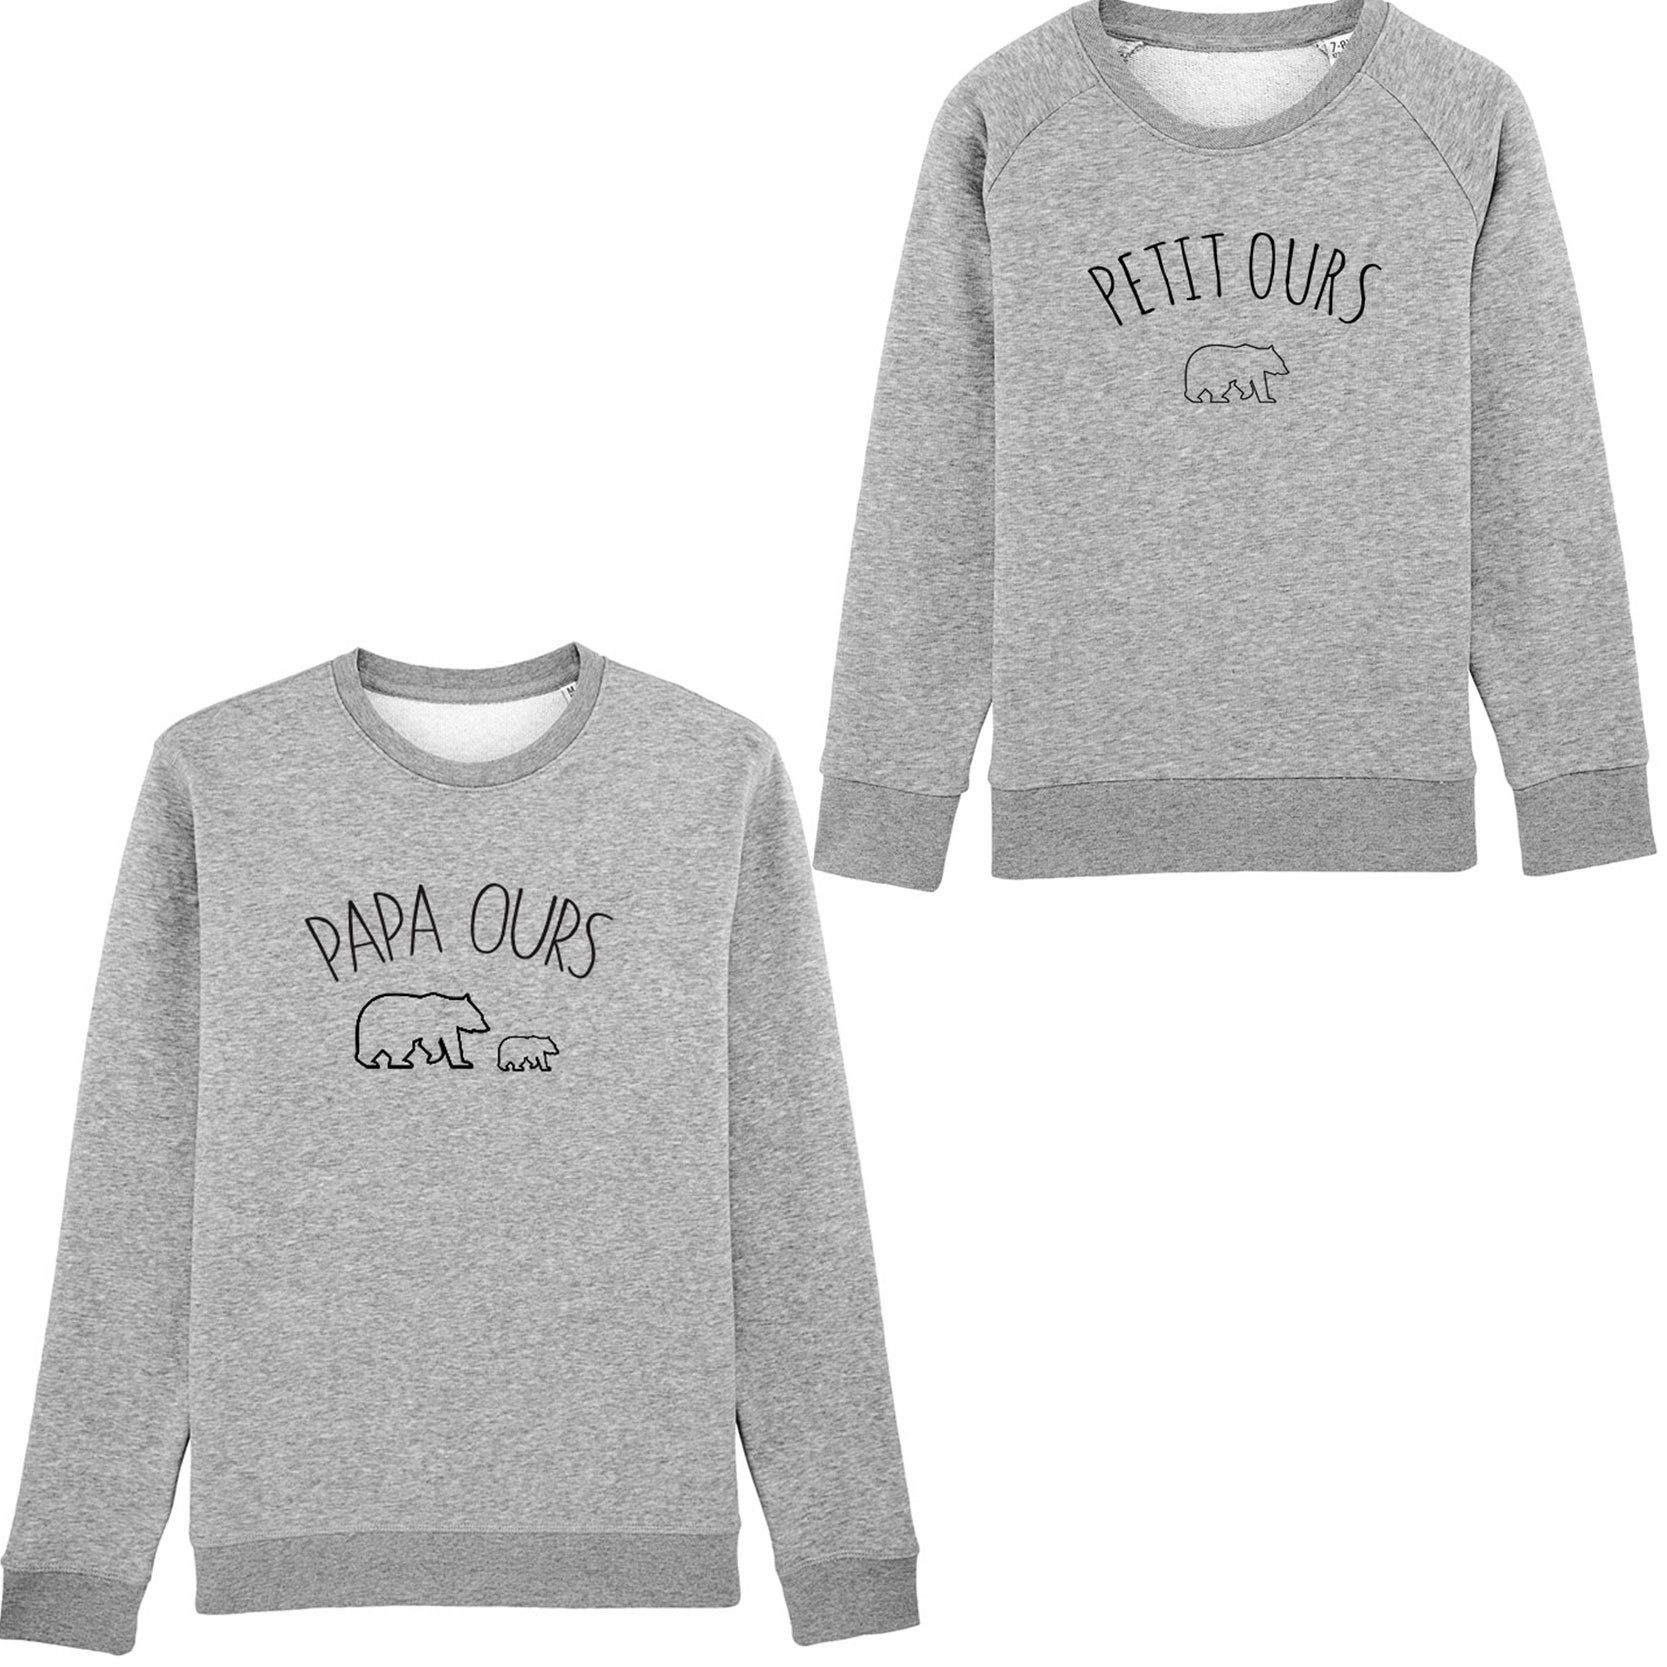 Pack Sweats Papa Ours x 1 petit ours